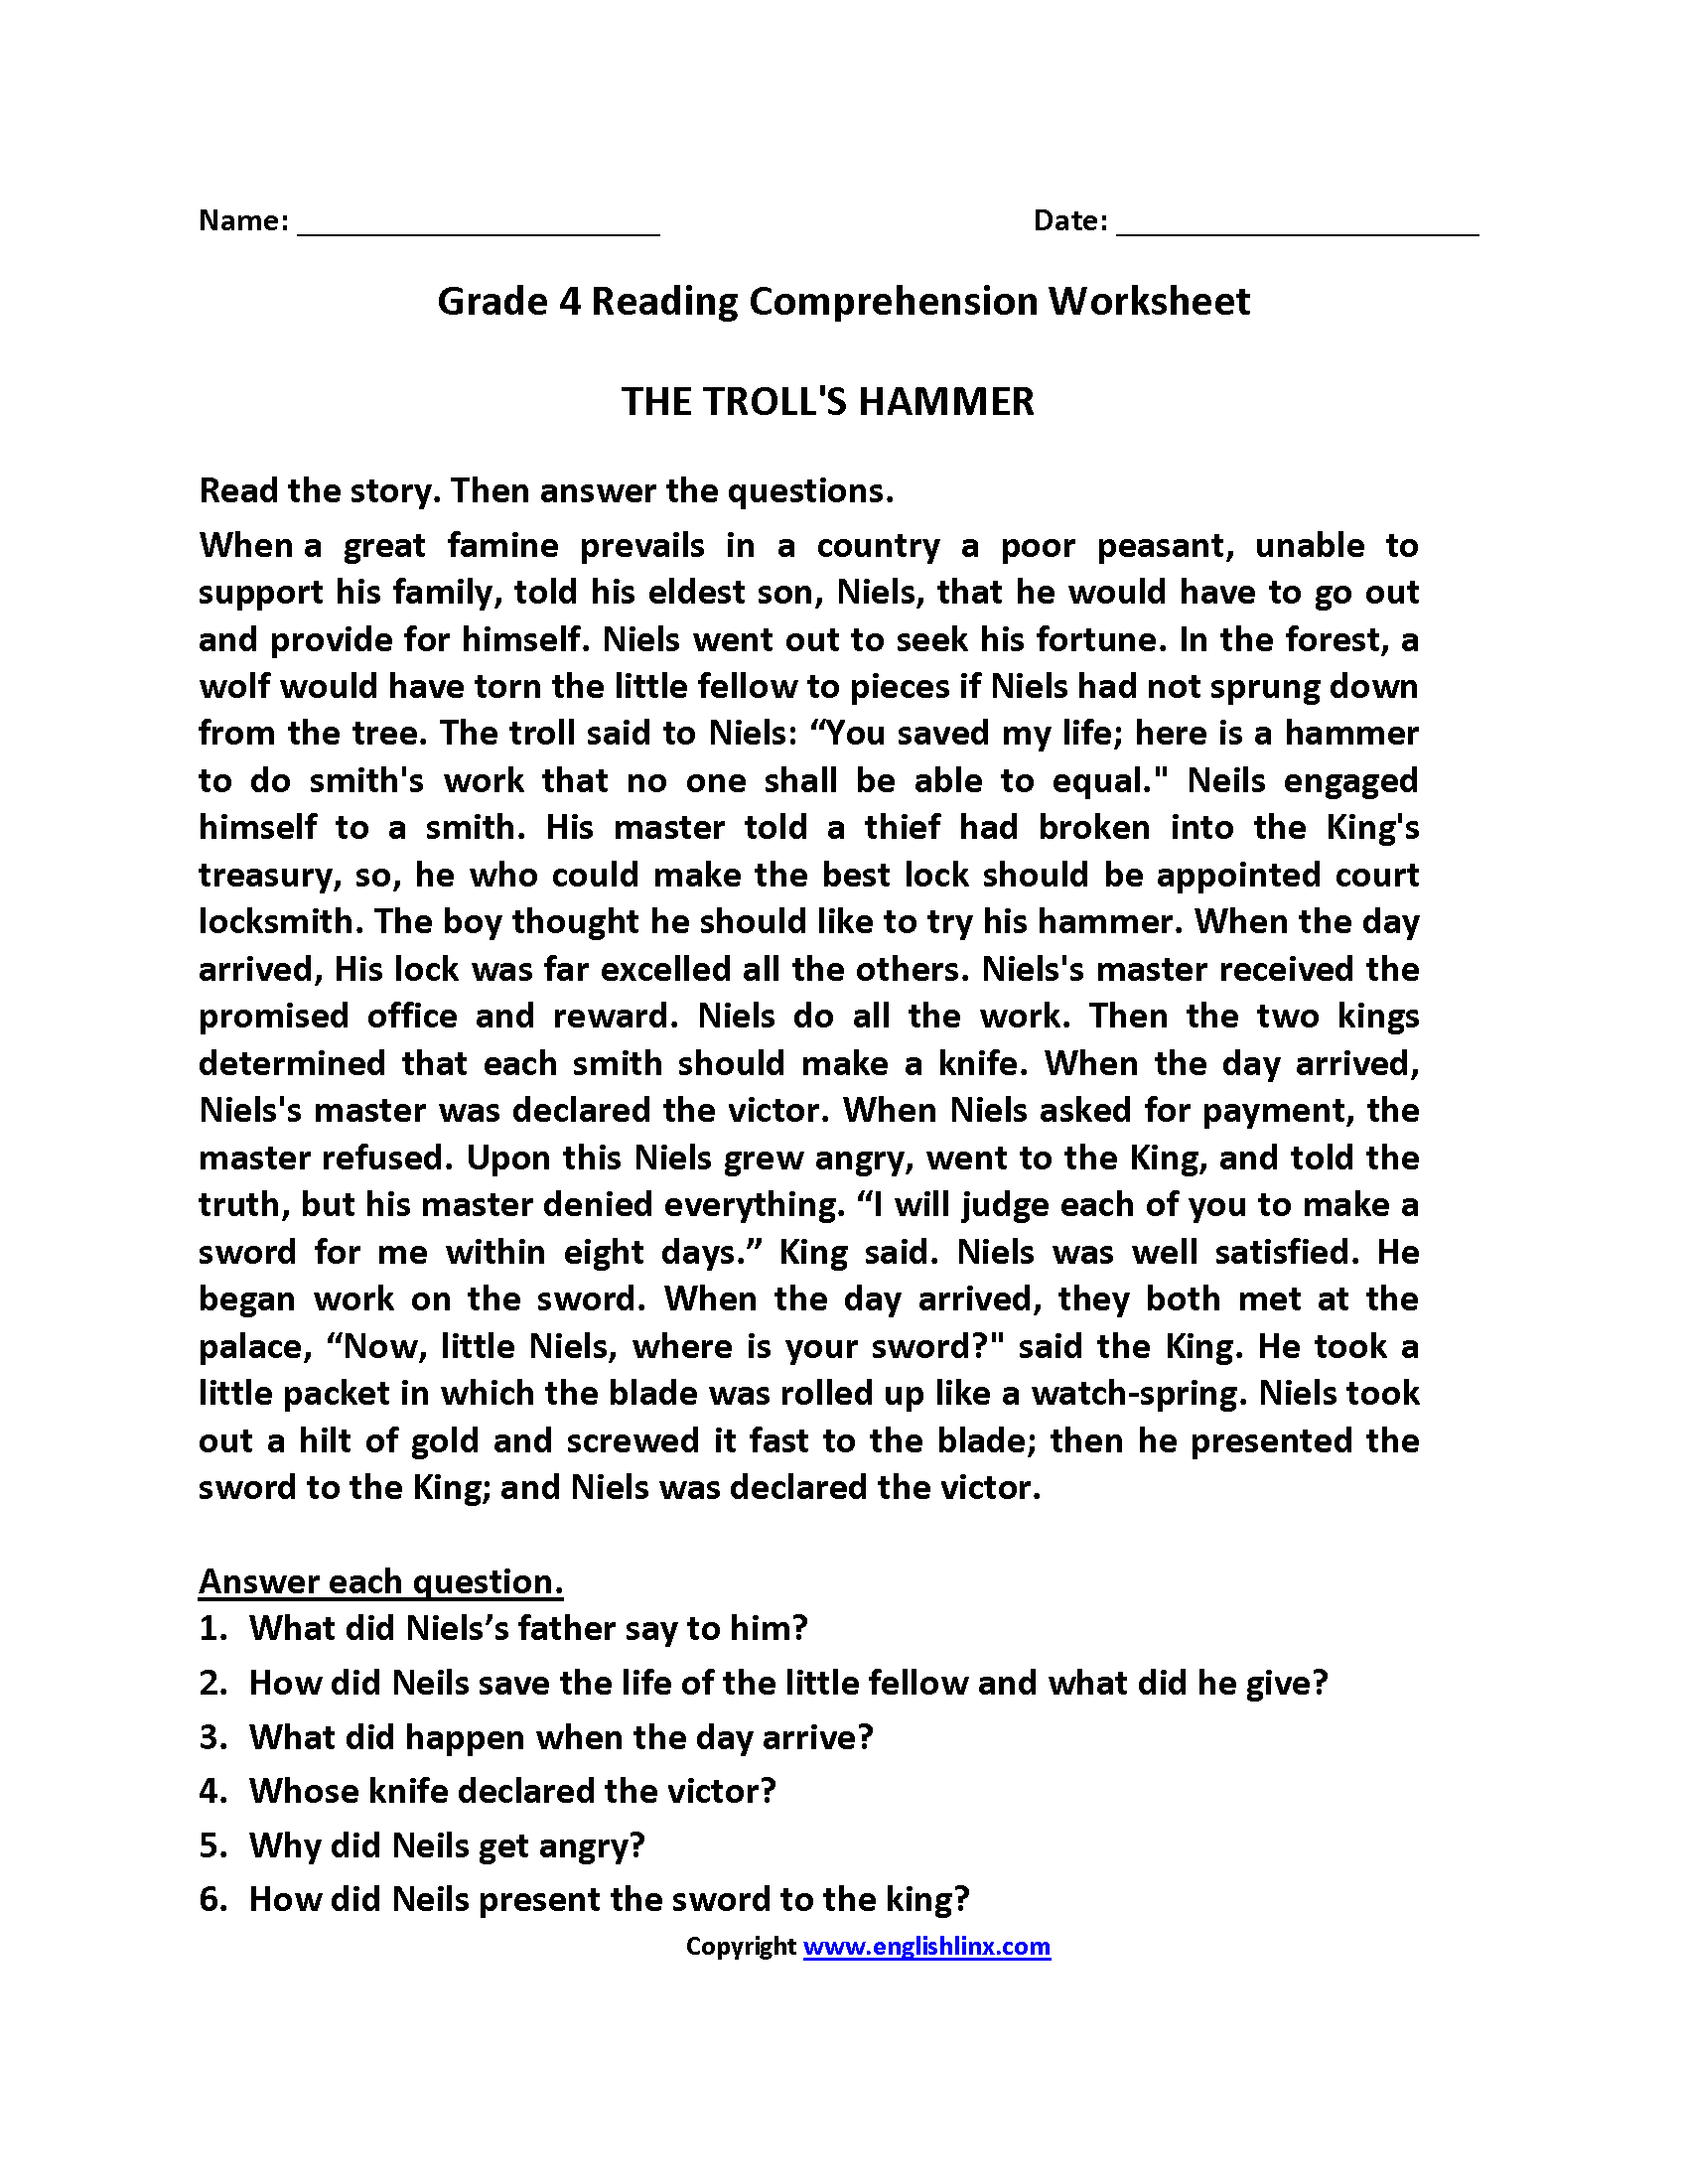 Year 4 Reading Prehension Worksheet